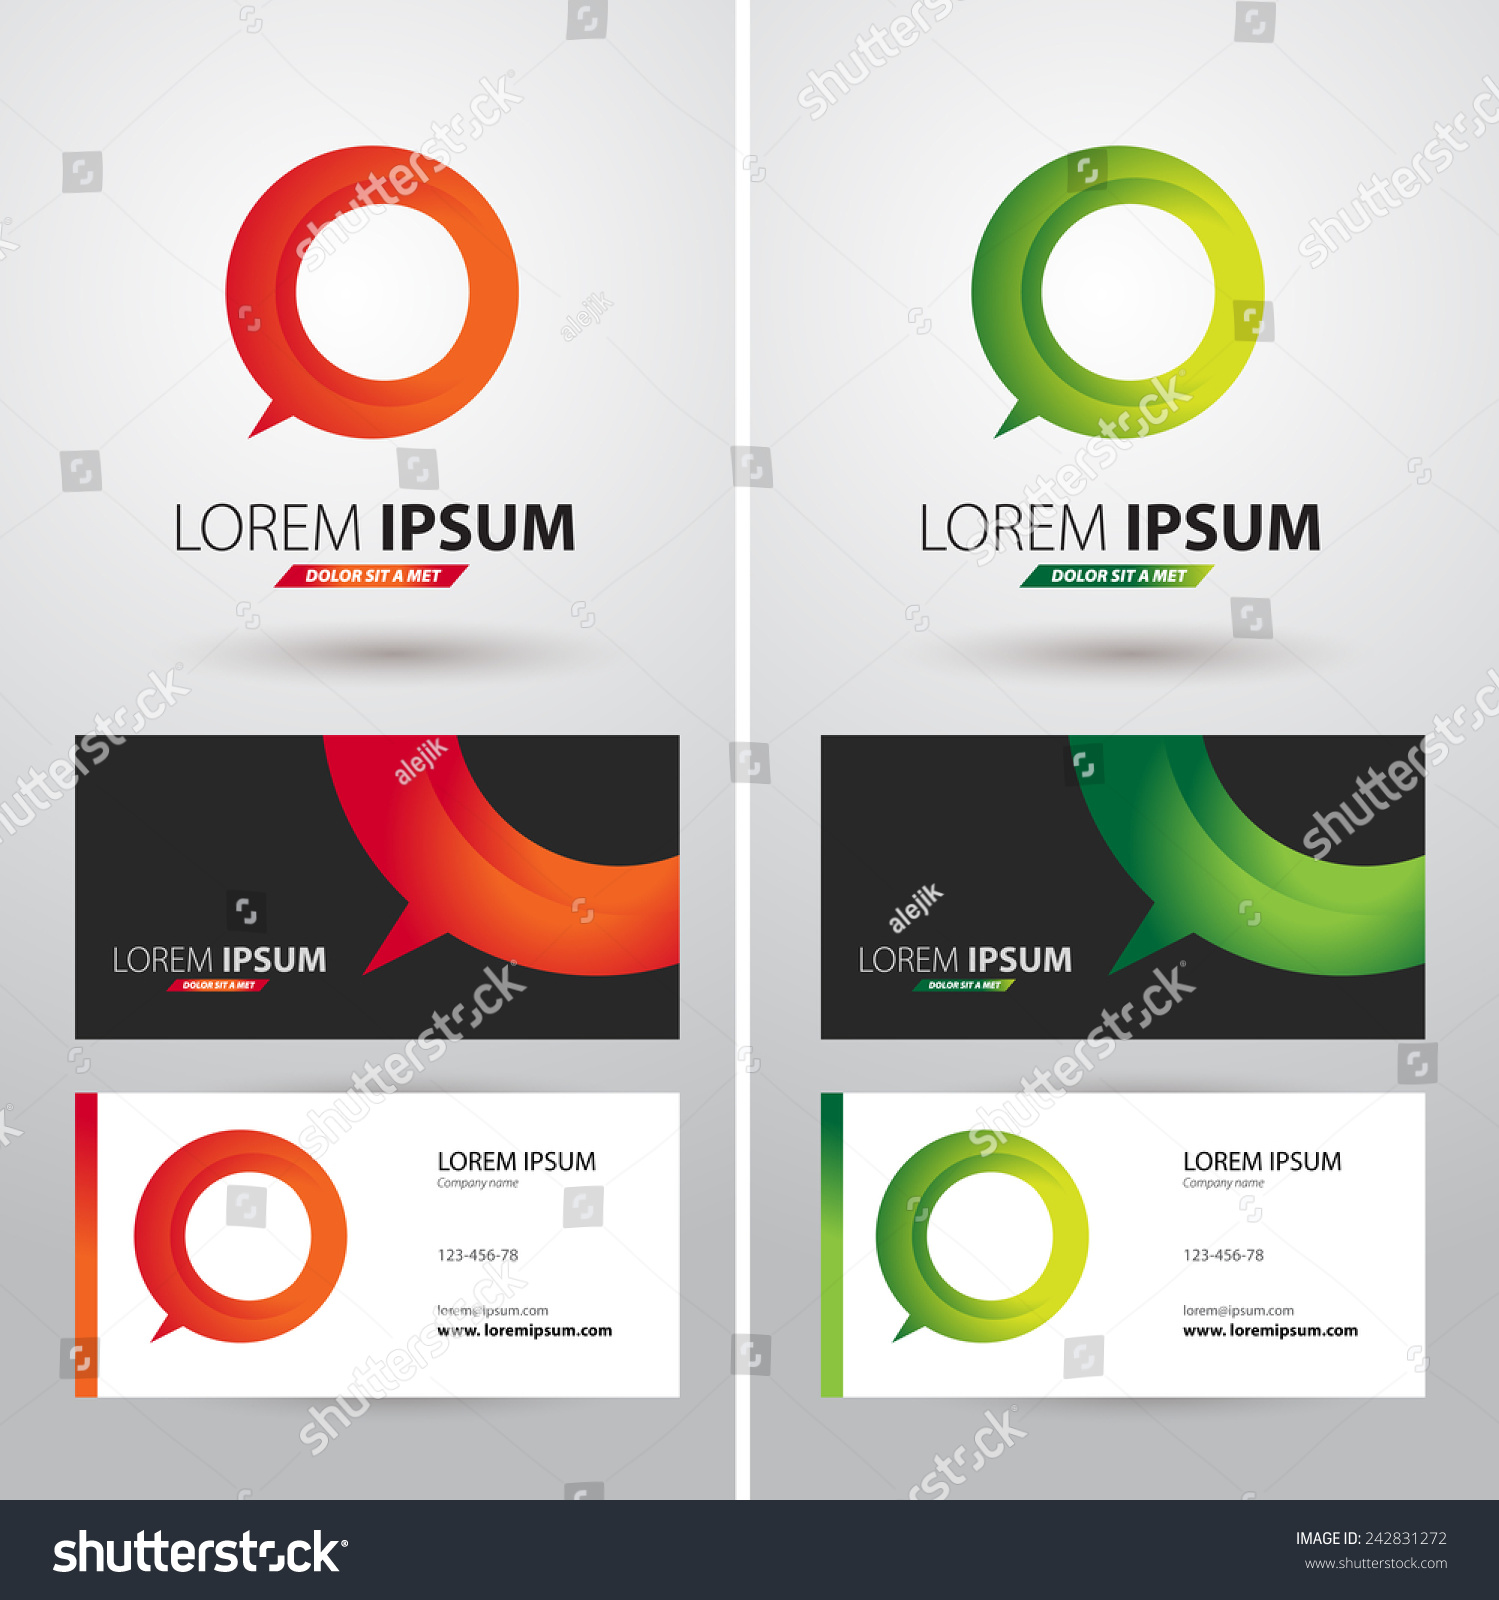 Business Card Logo Text Different Use Stock Vector